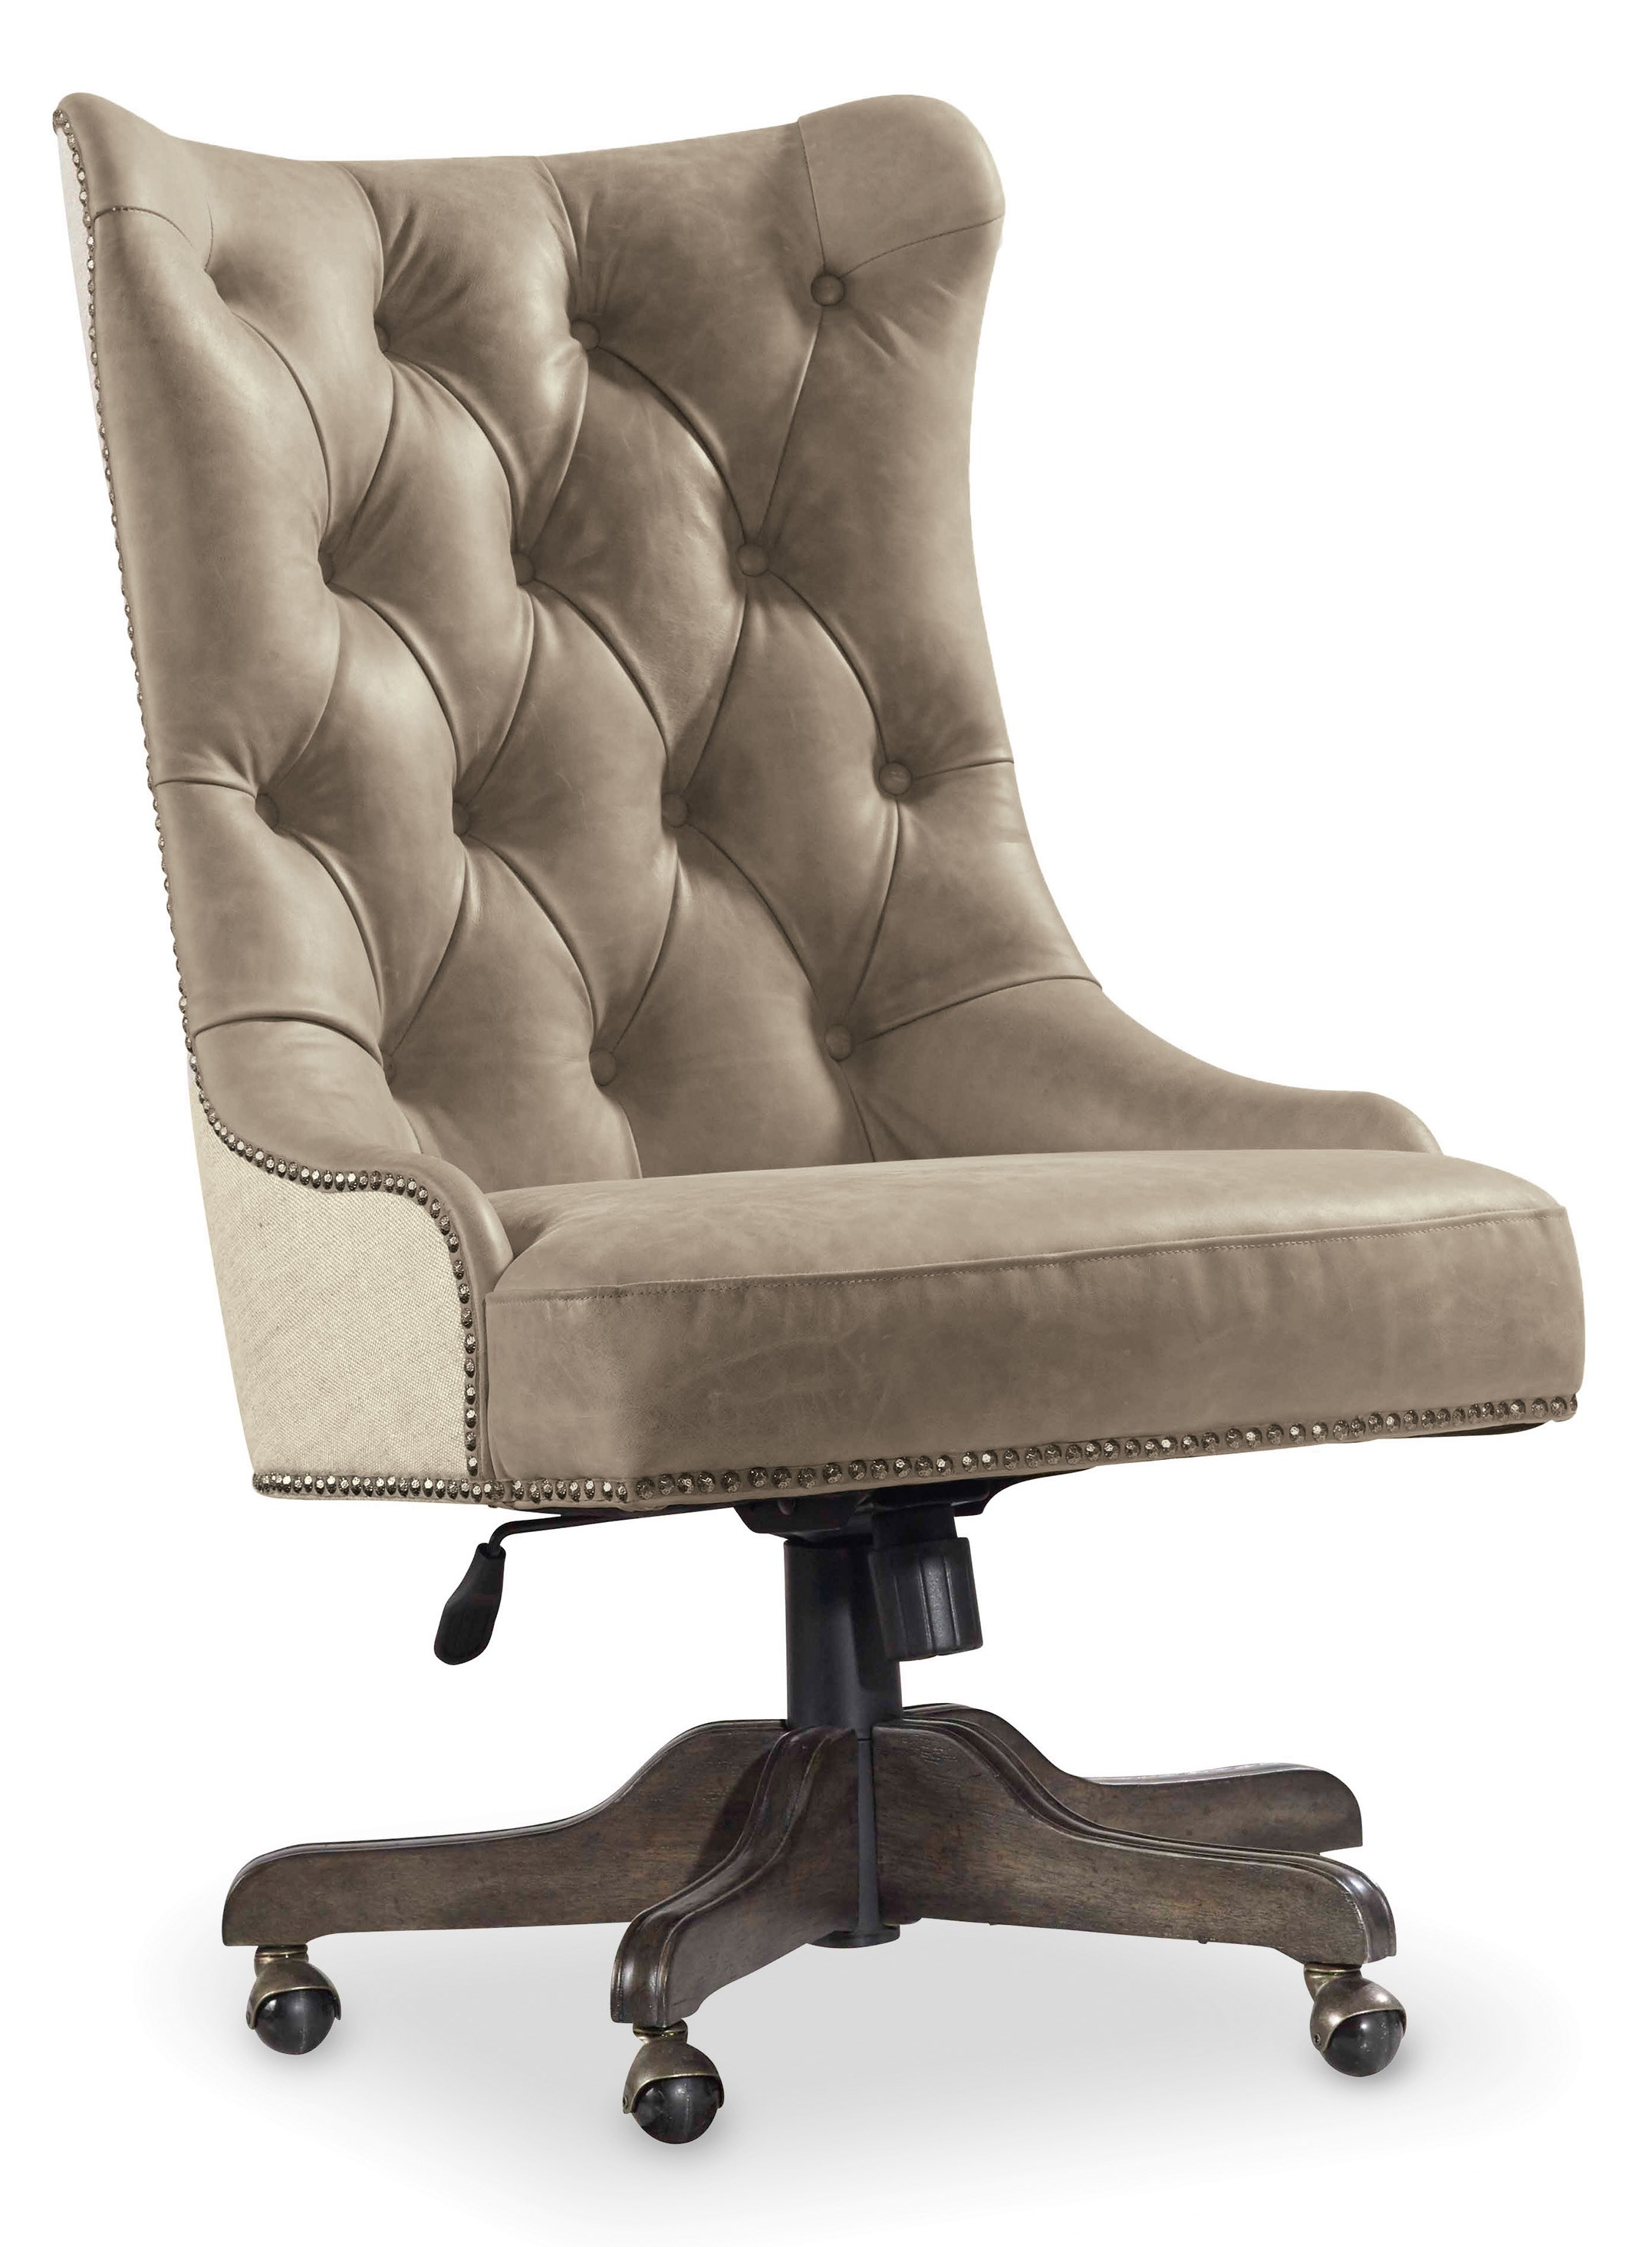 Attractive Hooker Furniture Vintage WestExecutive Desk Chair ...